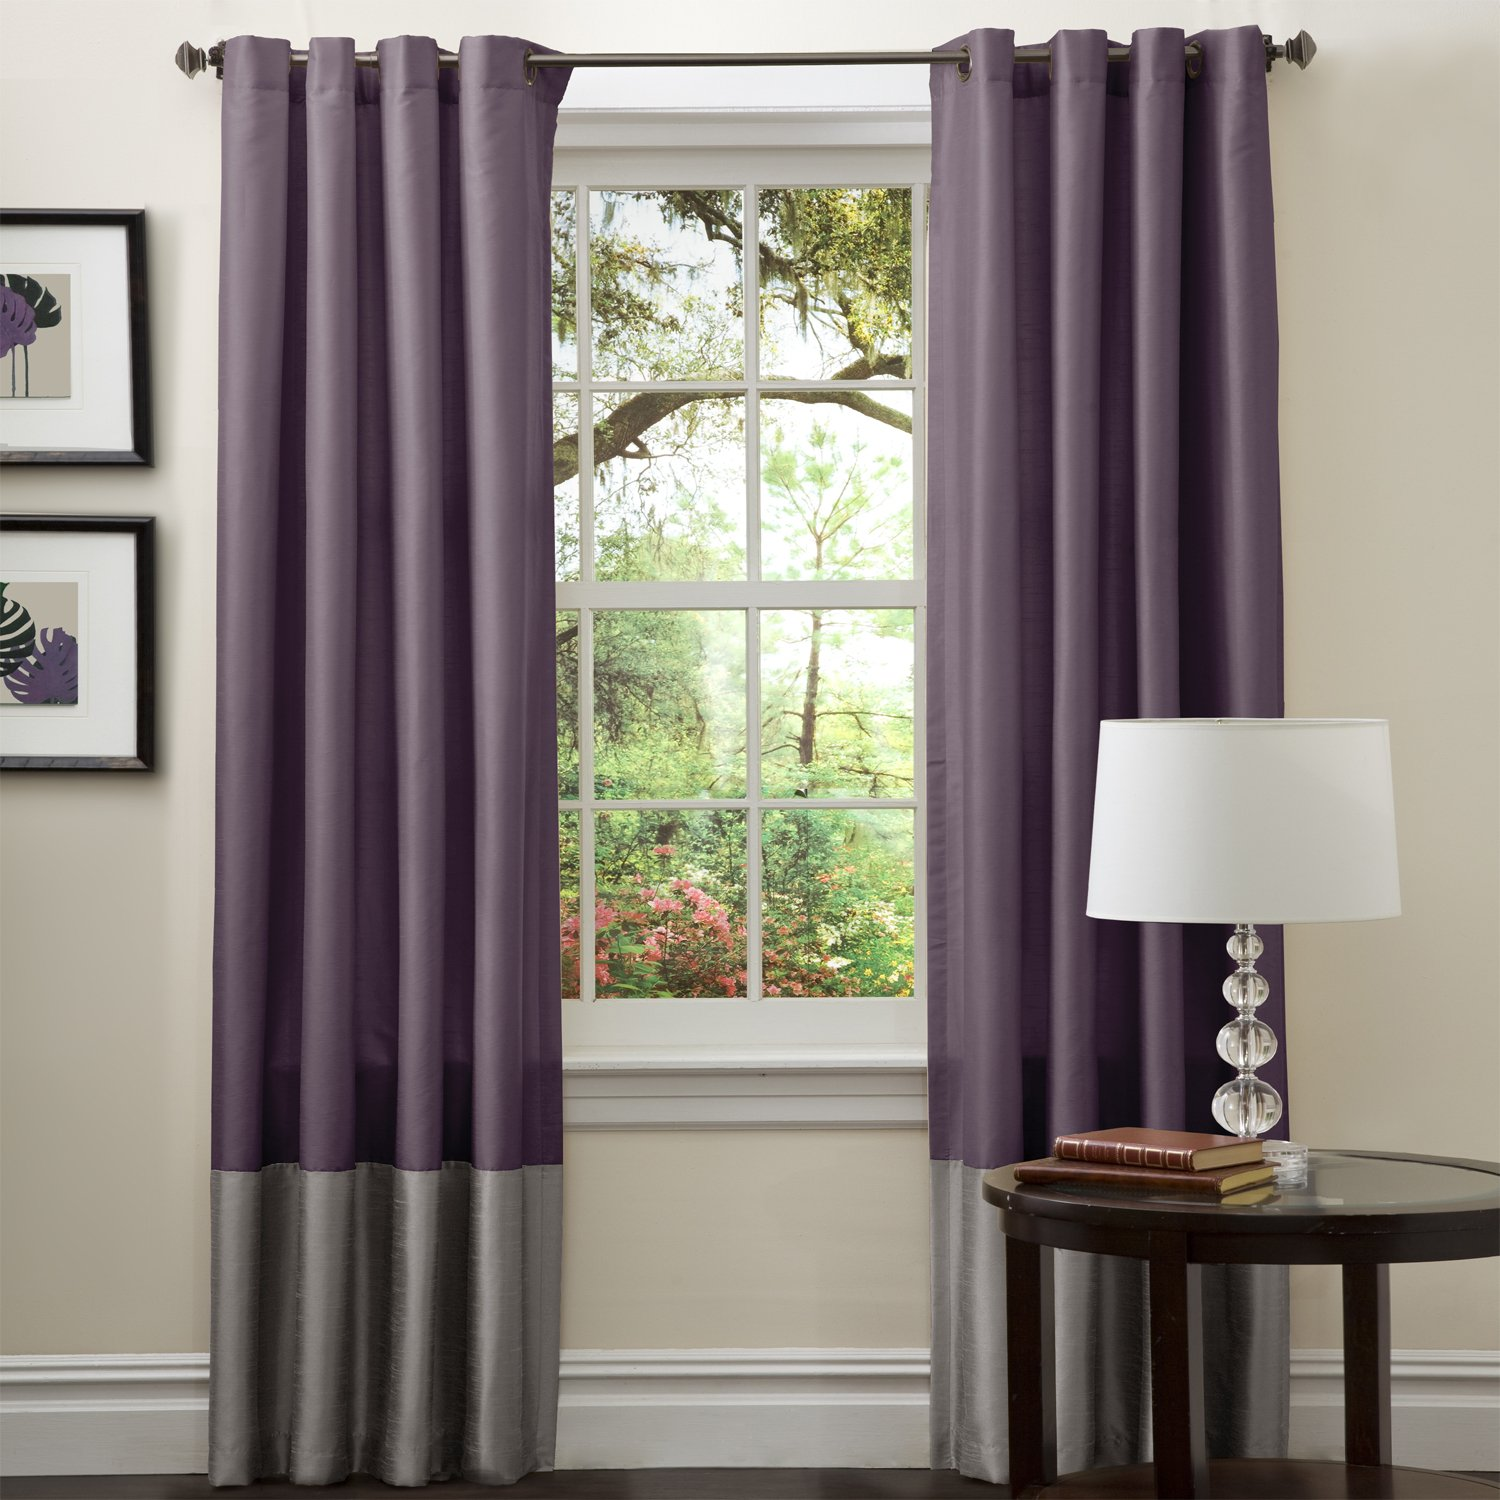 Lush Decor Prima Window Curtain Panel Pair Gray/Purple